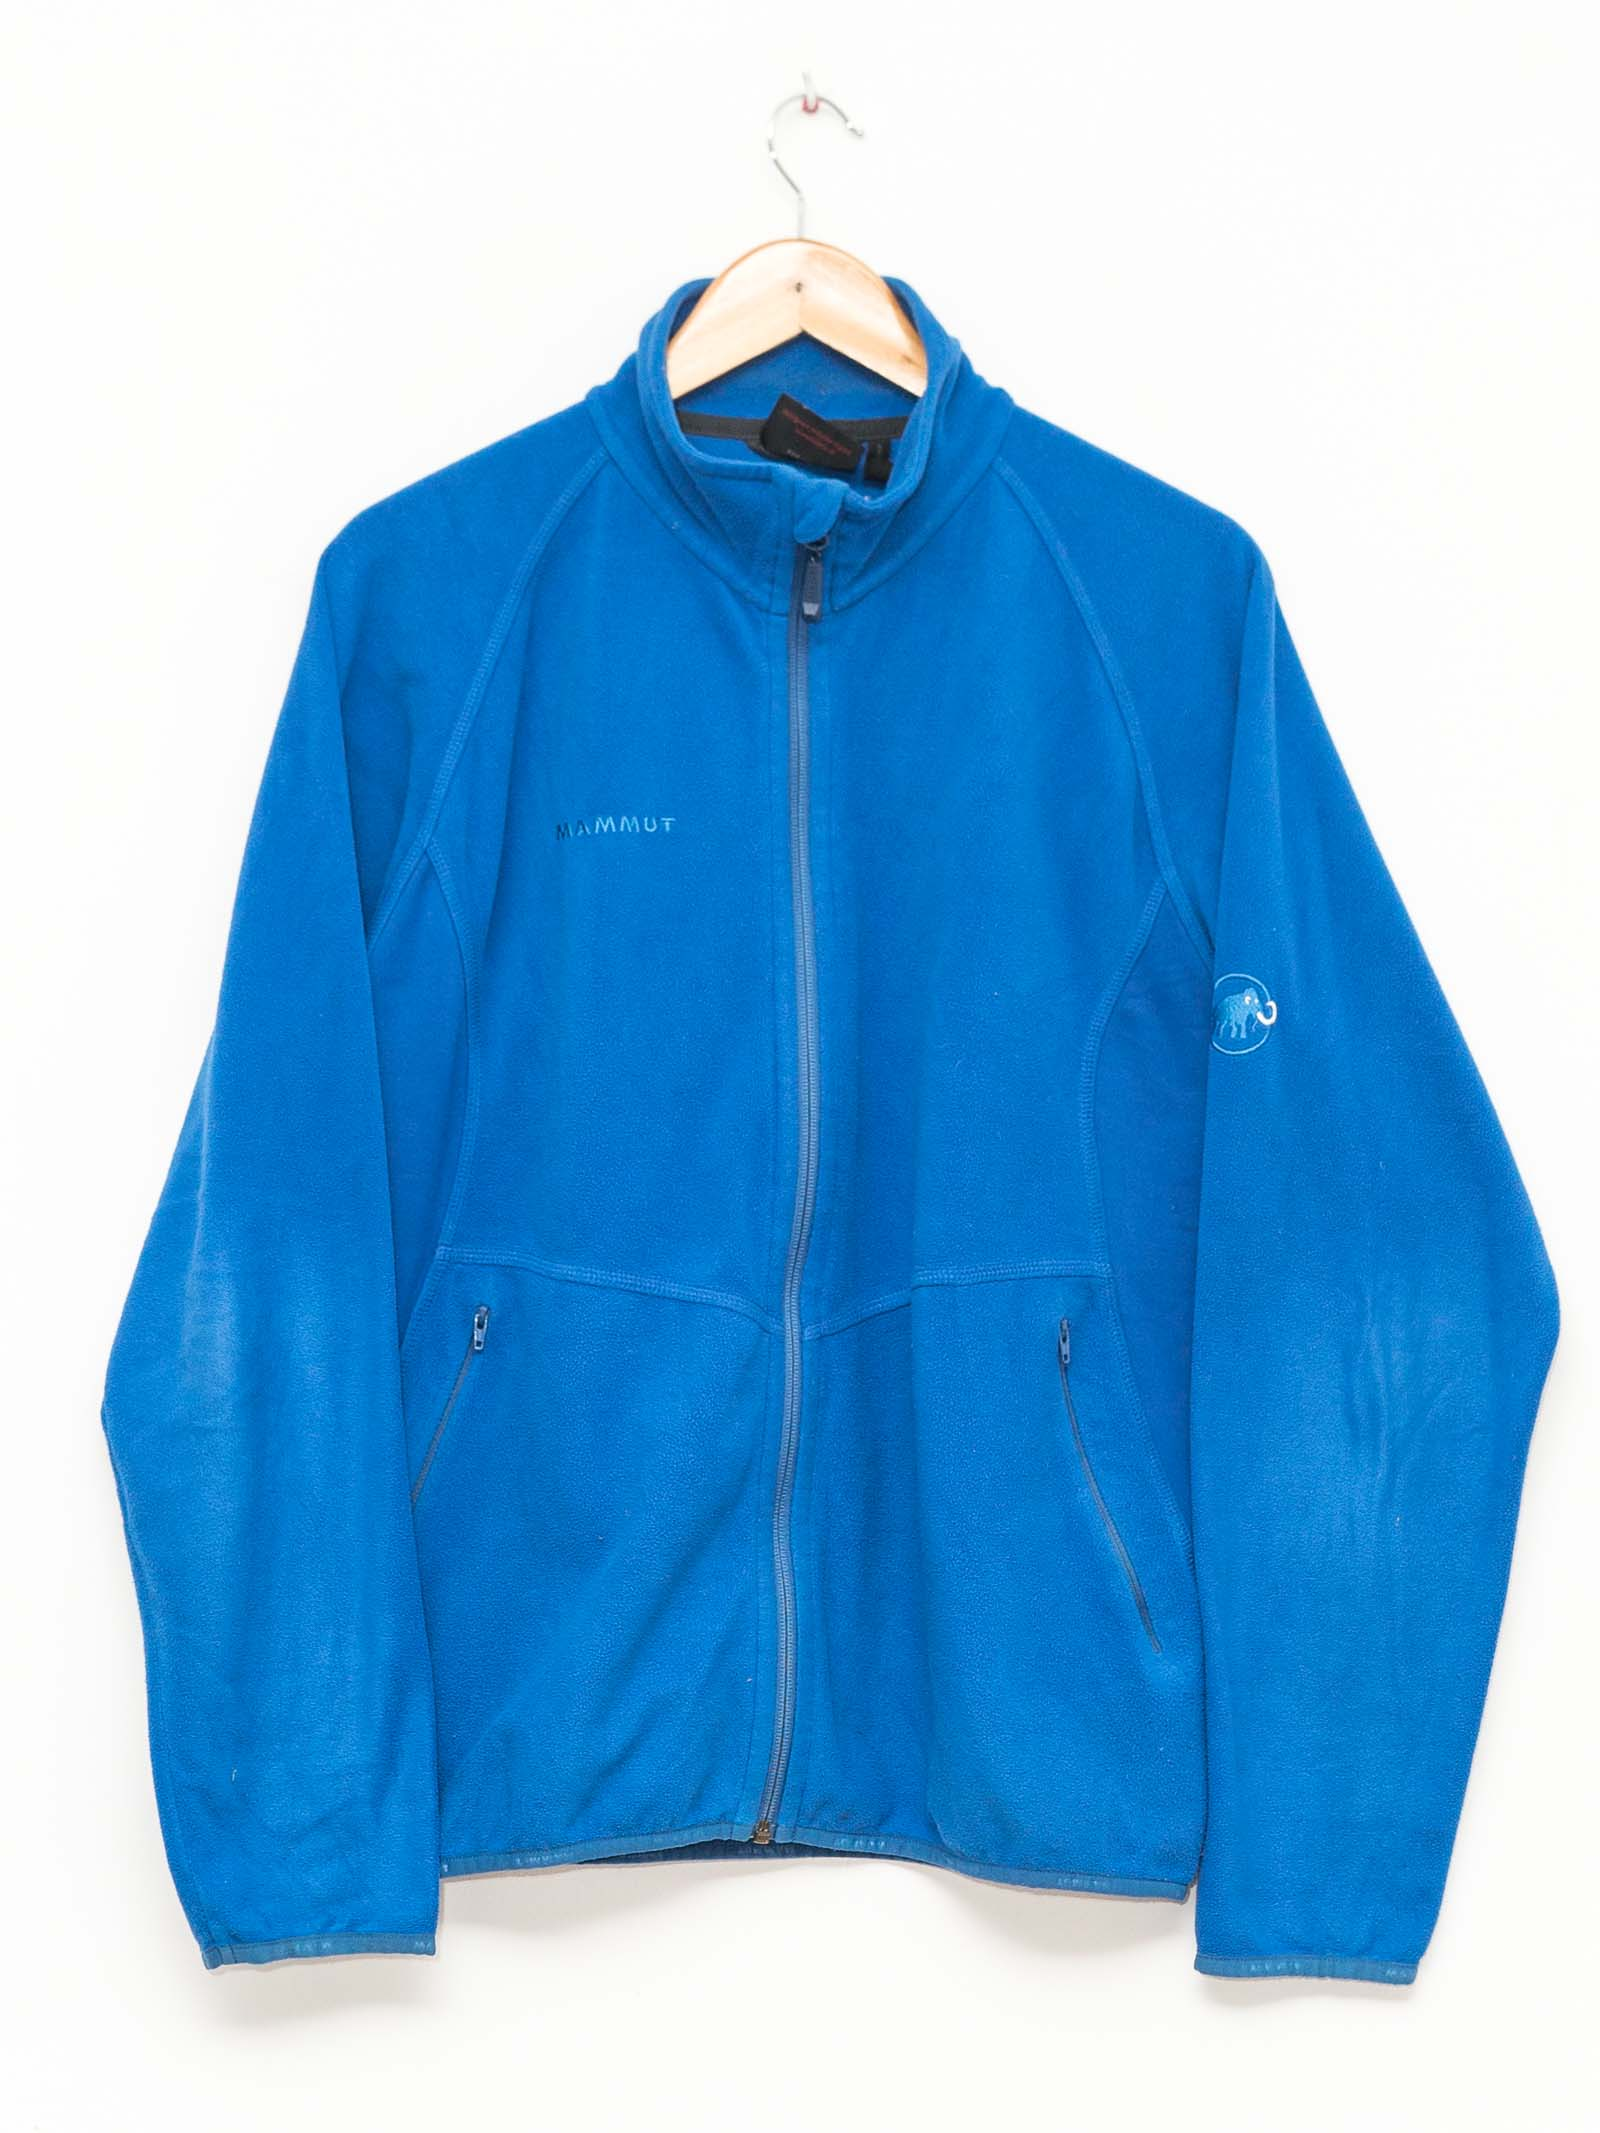 excreament-sportswear-jacket-knitwear-pullover-vintage-shop-fashion-secondhand-clothes (104)